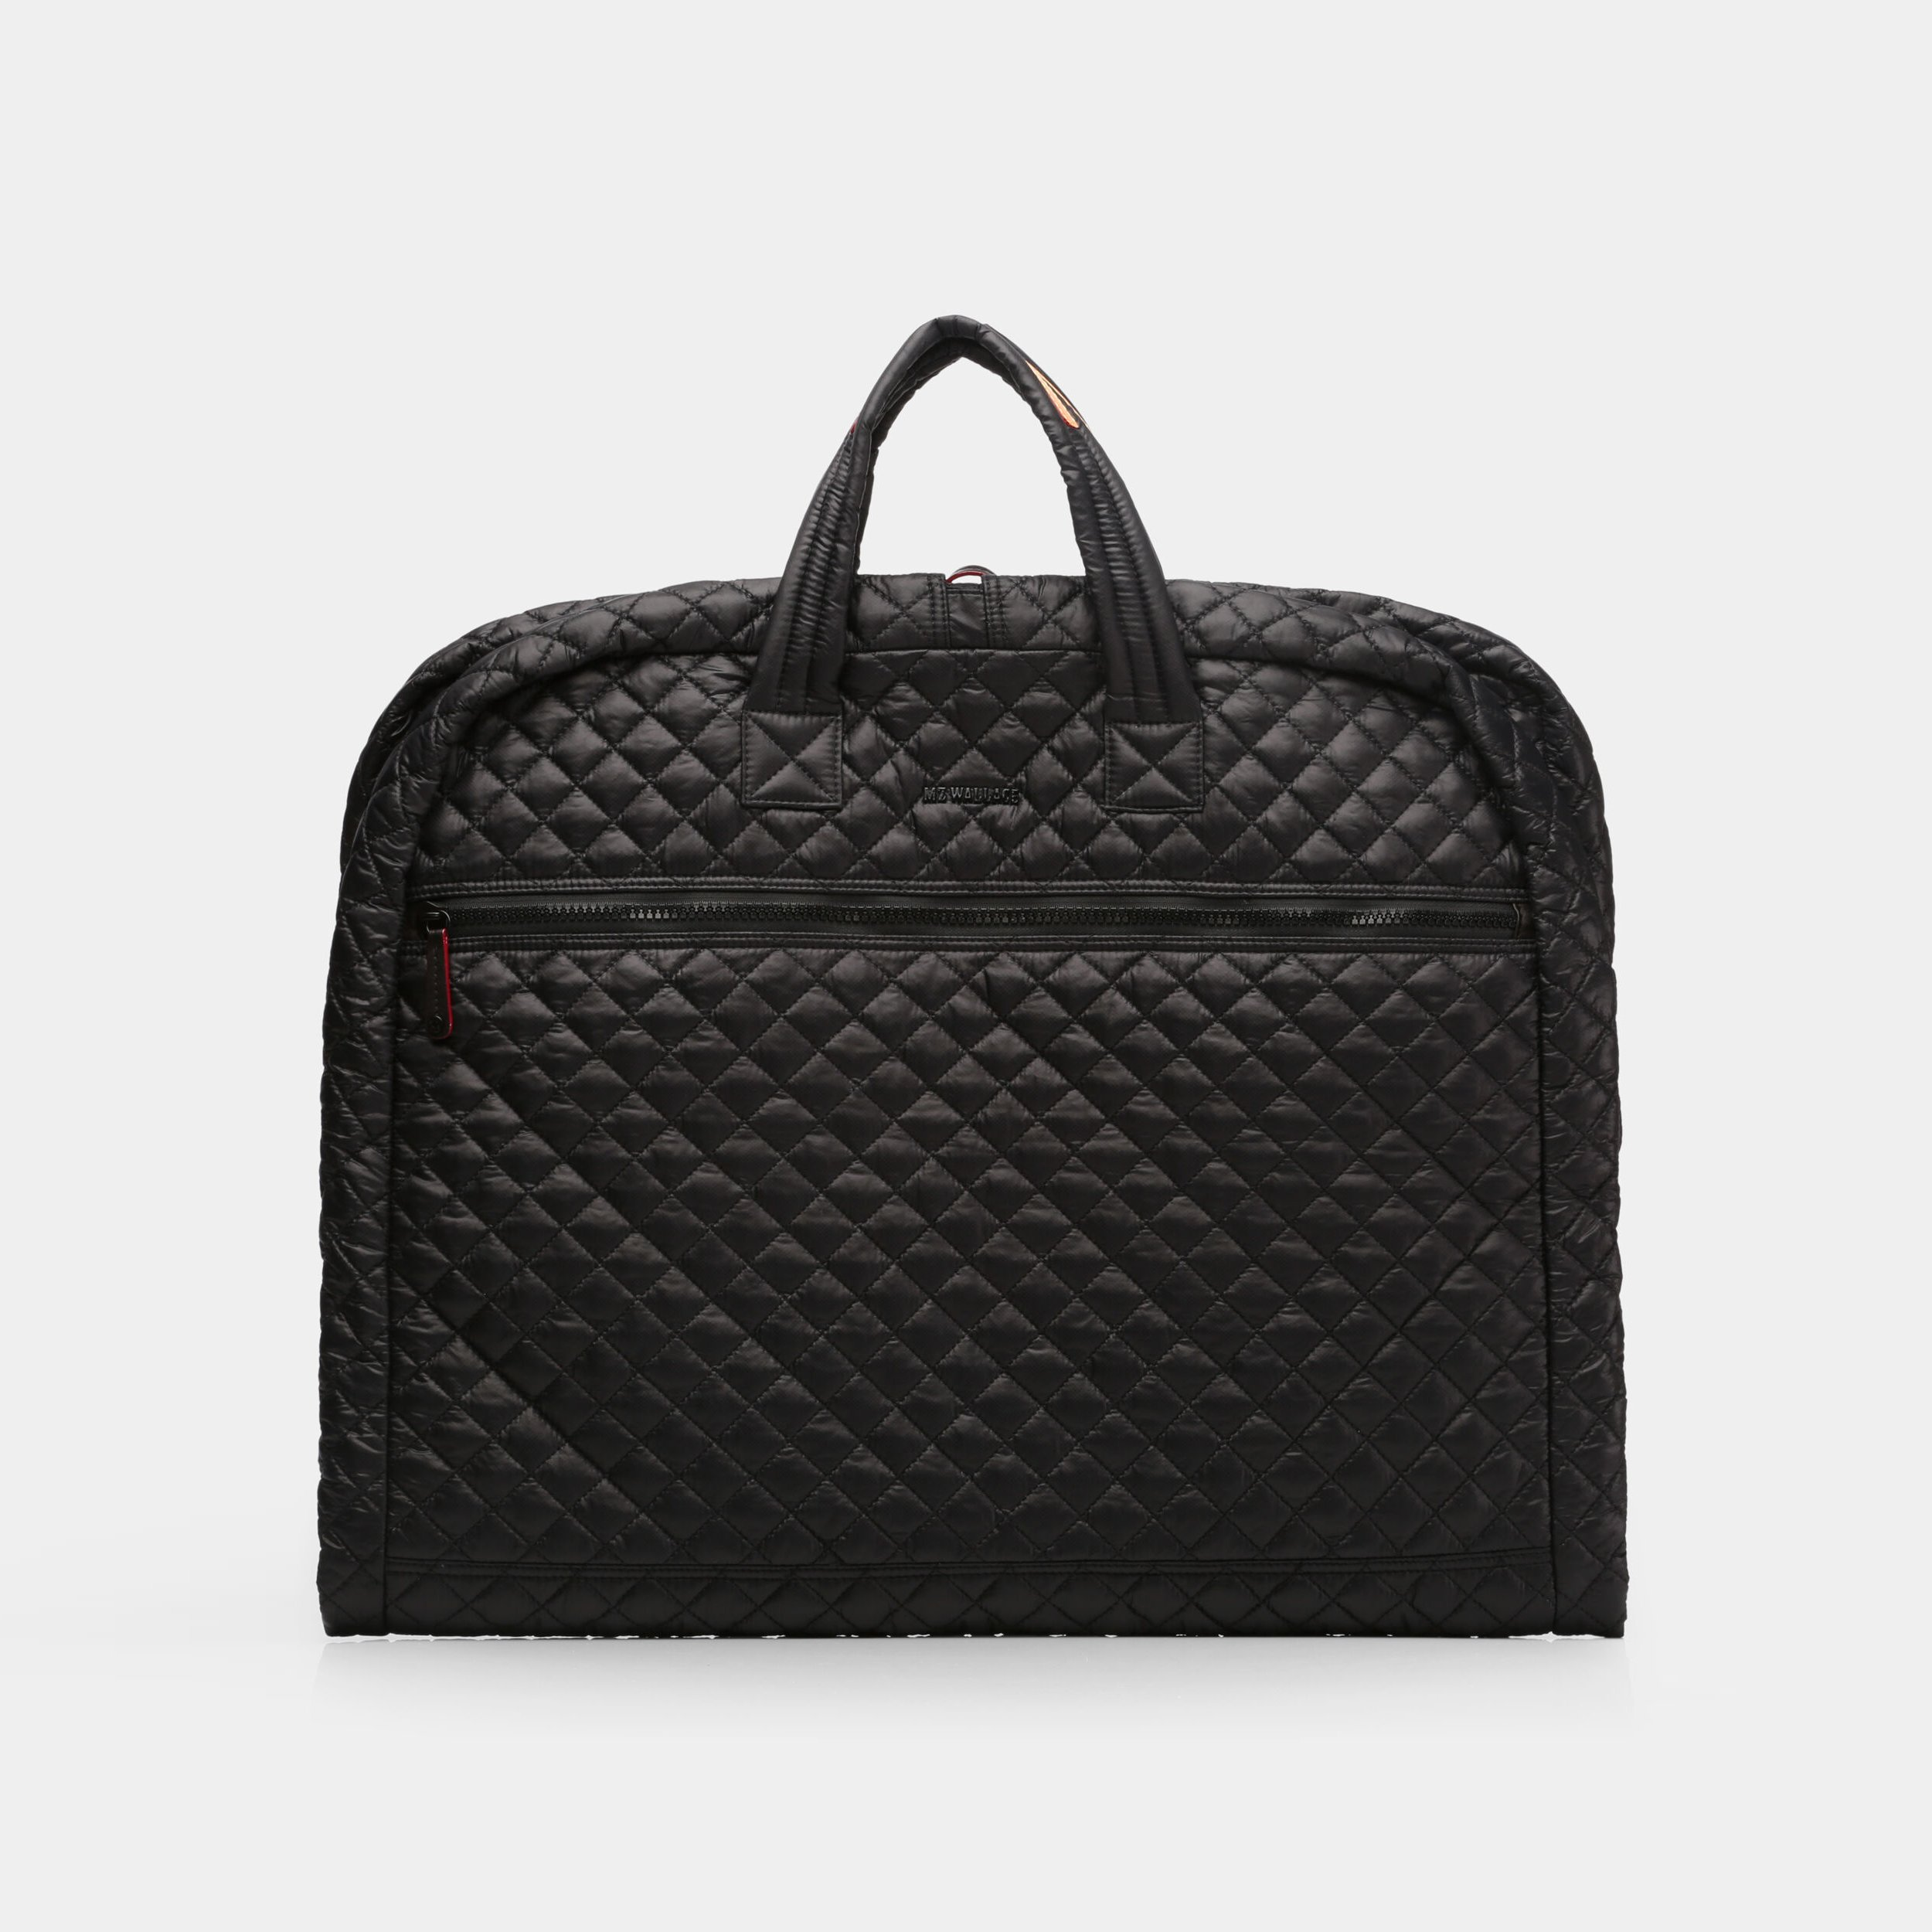 MZ Wallace Michael Garment Bag in Black